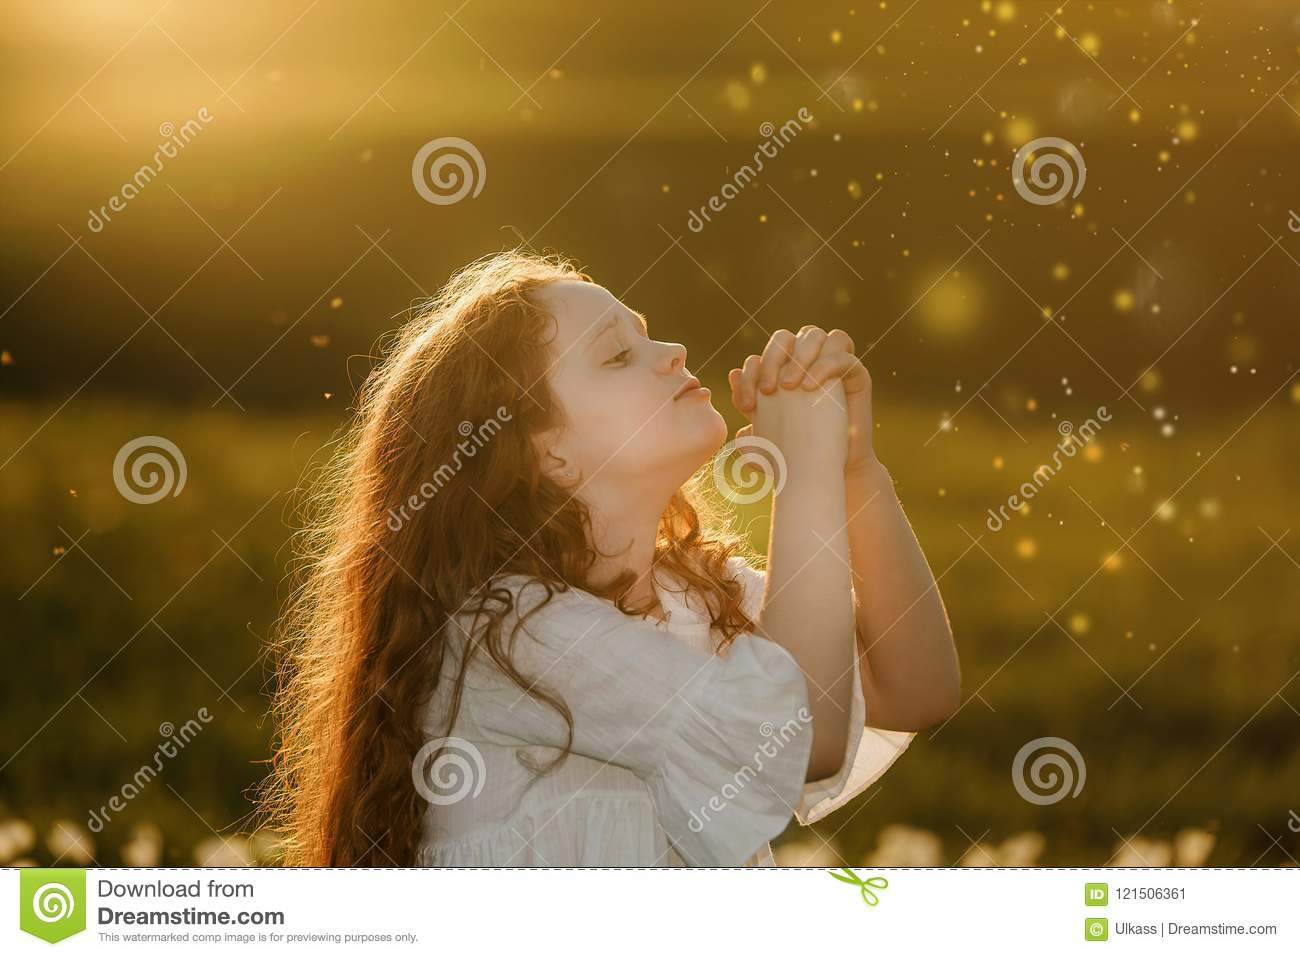 Cute girl with praying. Peace, hope, dreams concept.